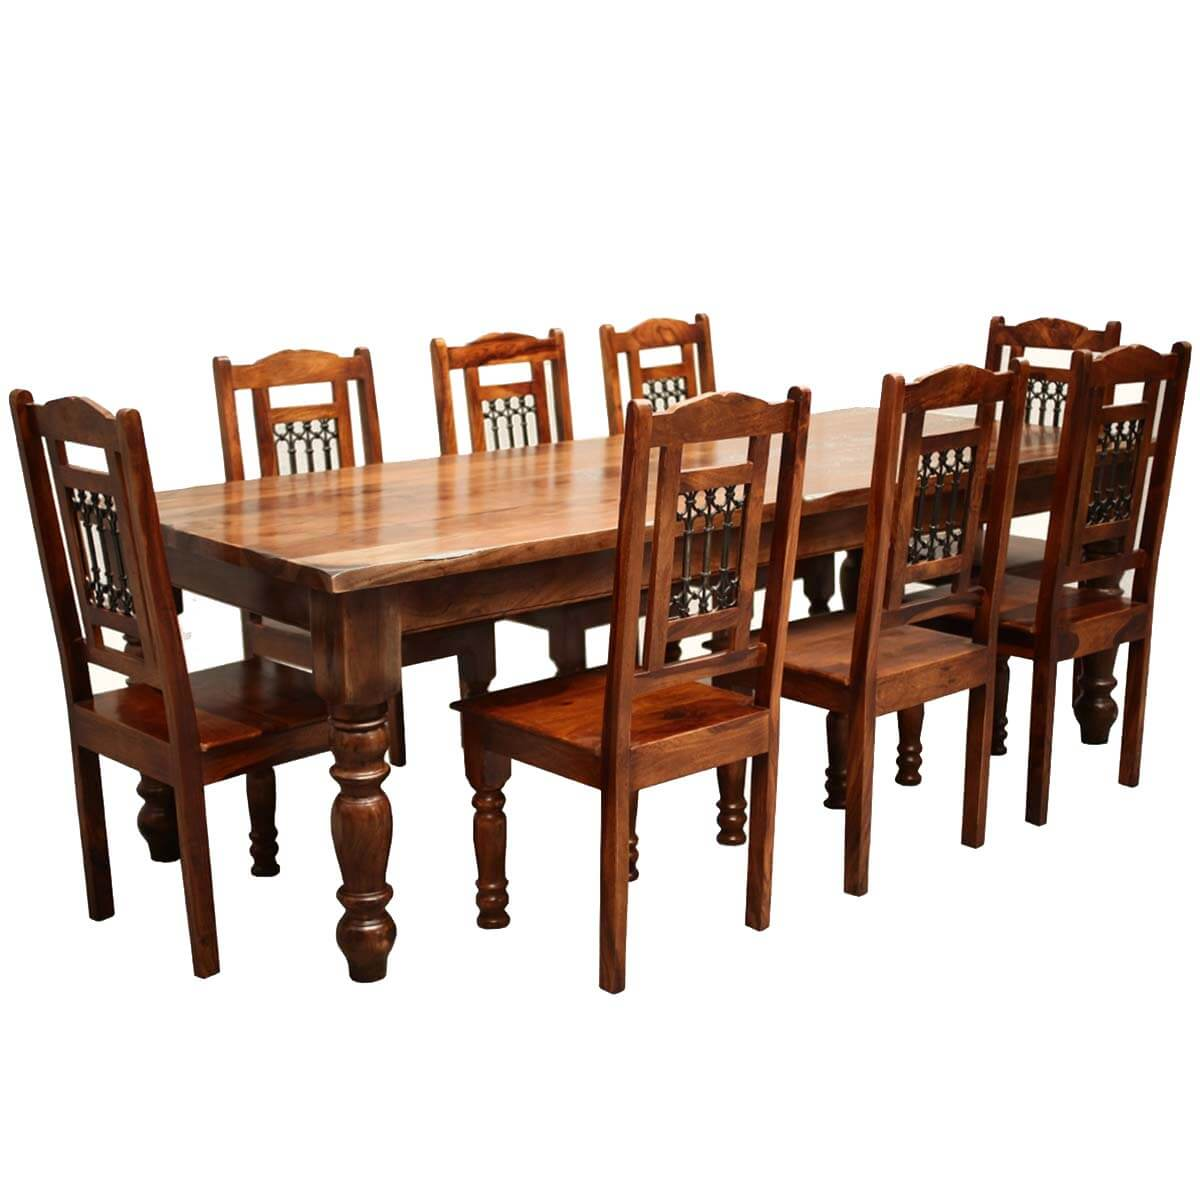 Rustic furniture solid wood large dining table 8 chair set for Small wood dining table and chairs